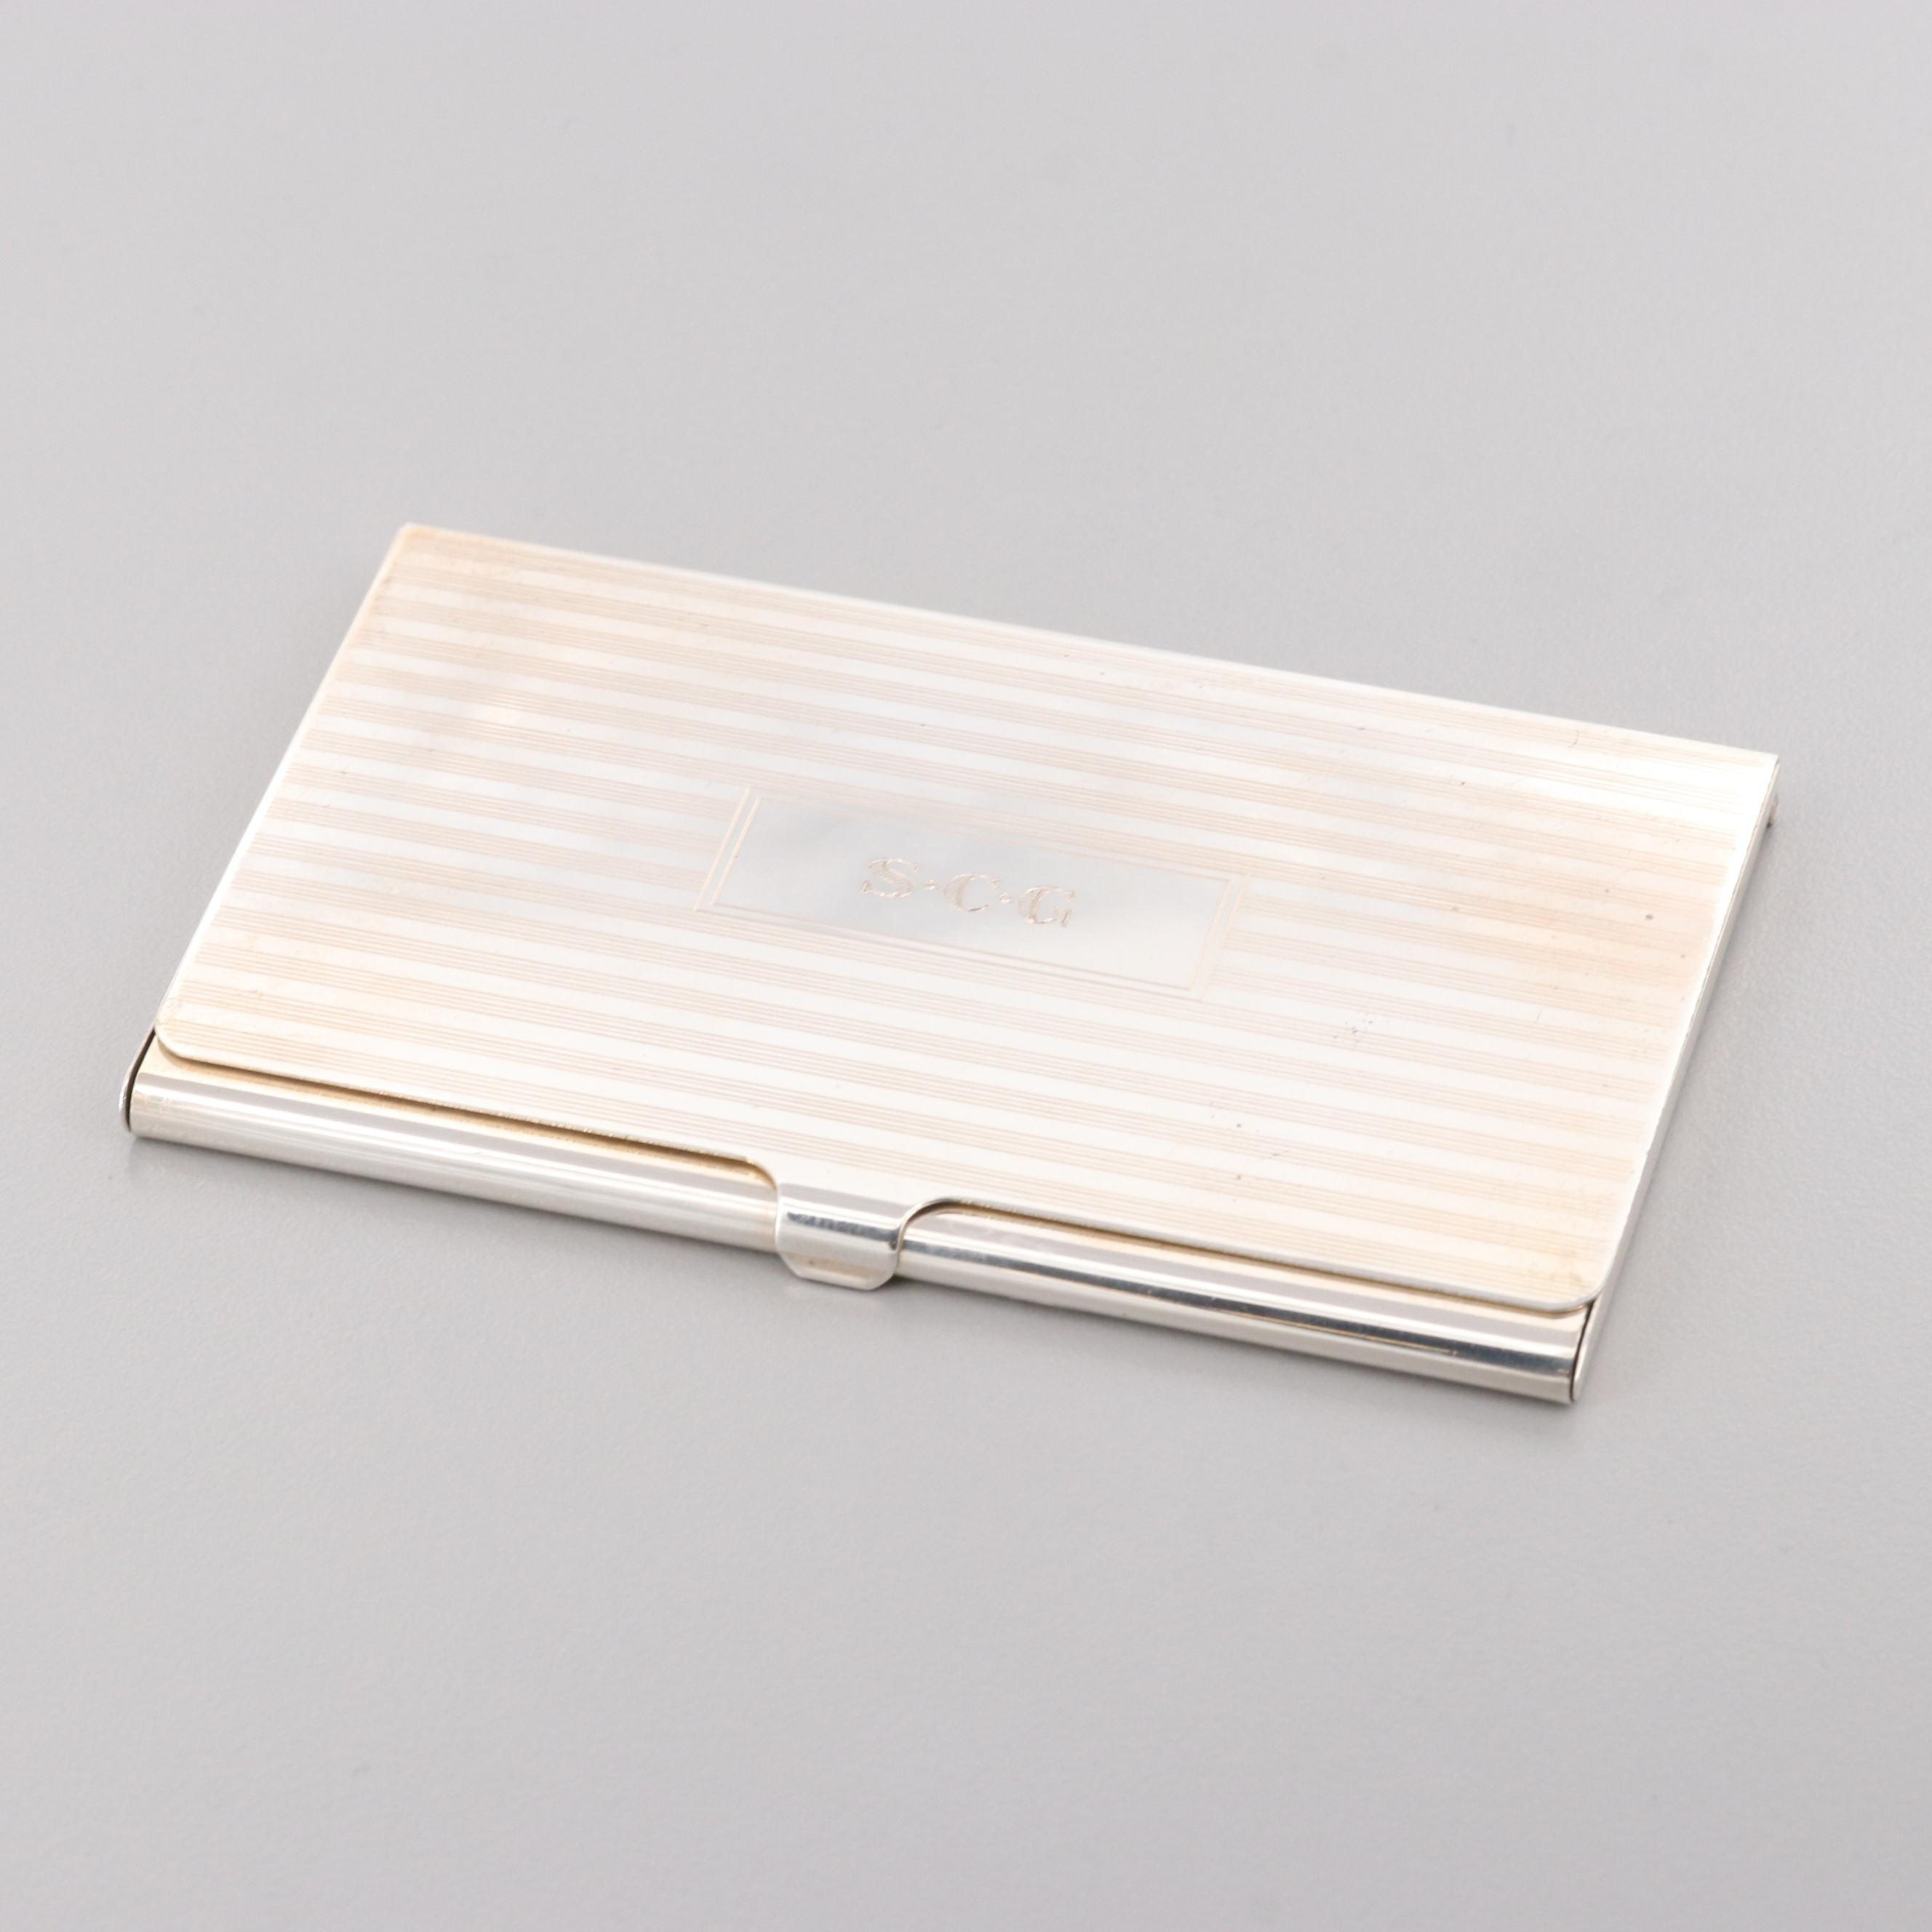 Tiffany & Co. Sterling Silver Card Case